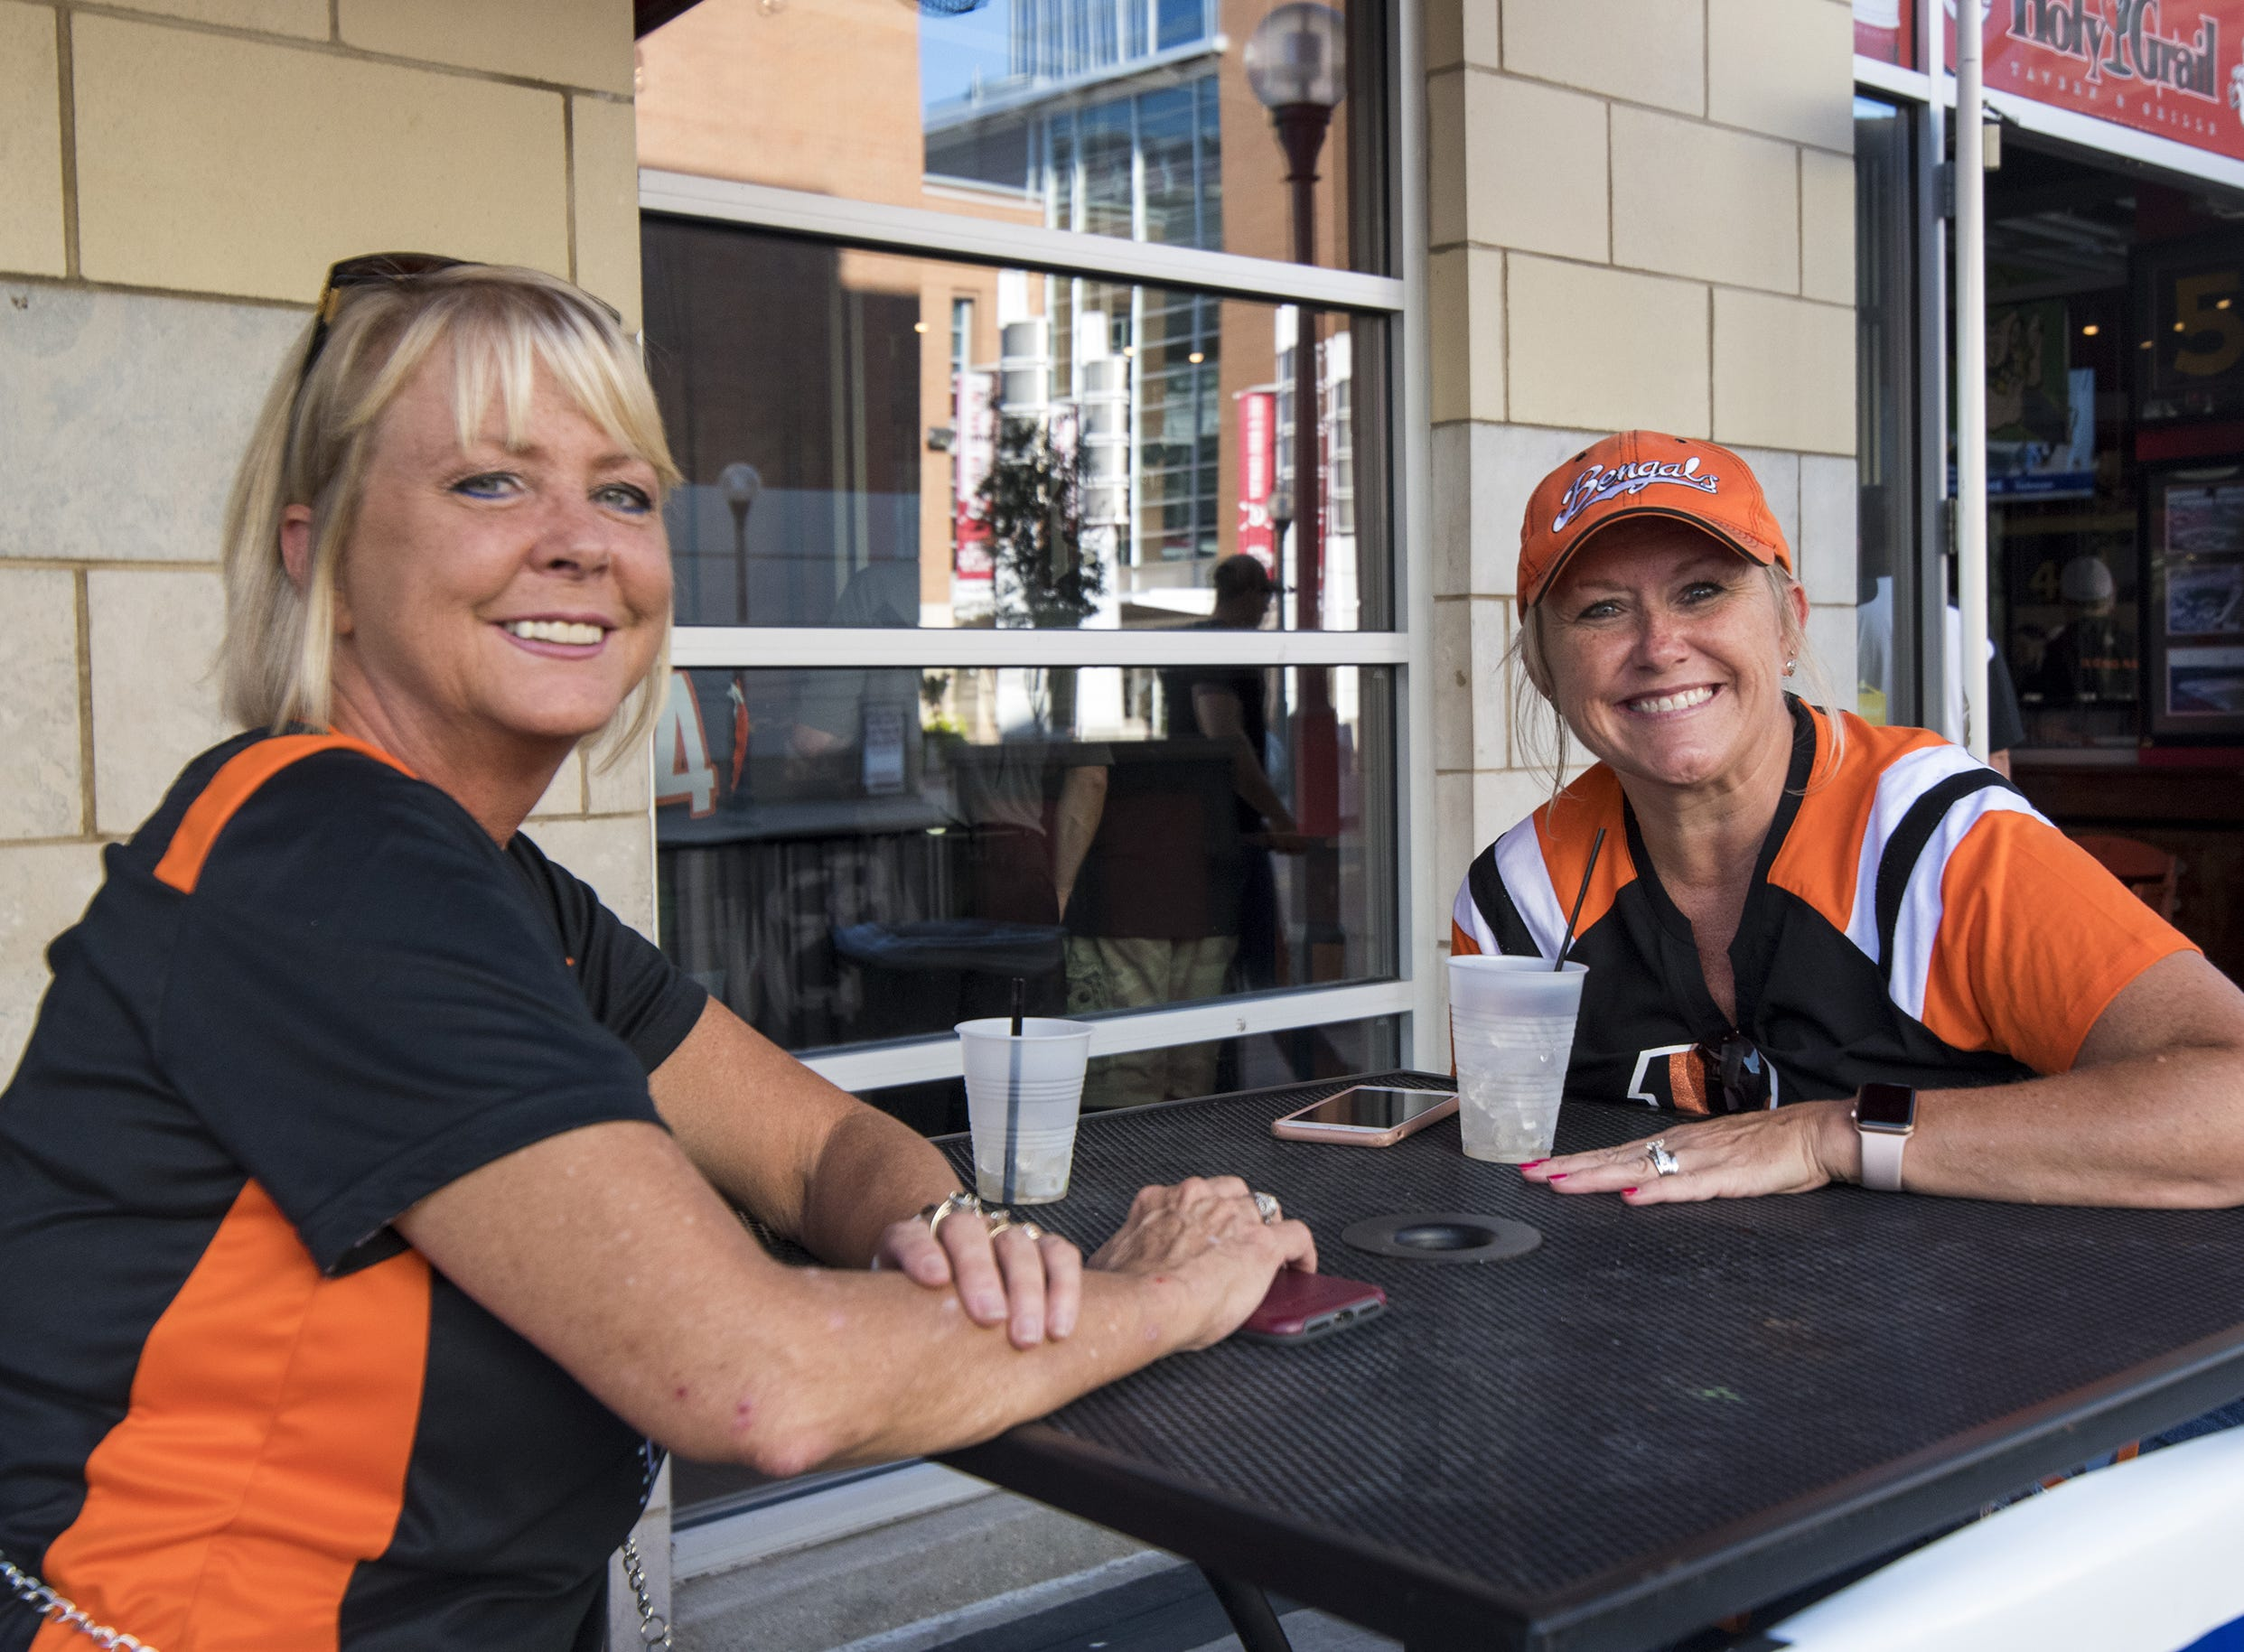 Debbie Cox of Burlington and Paige Olson of Loveland grab drink at the Holy Grail before the Bengals game against the Baltimore Ravens Thursday, September 13, 2018 in Cincinnati, Ohio.